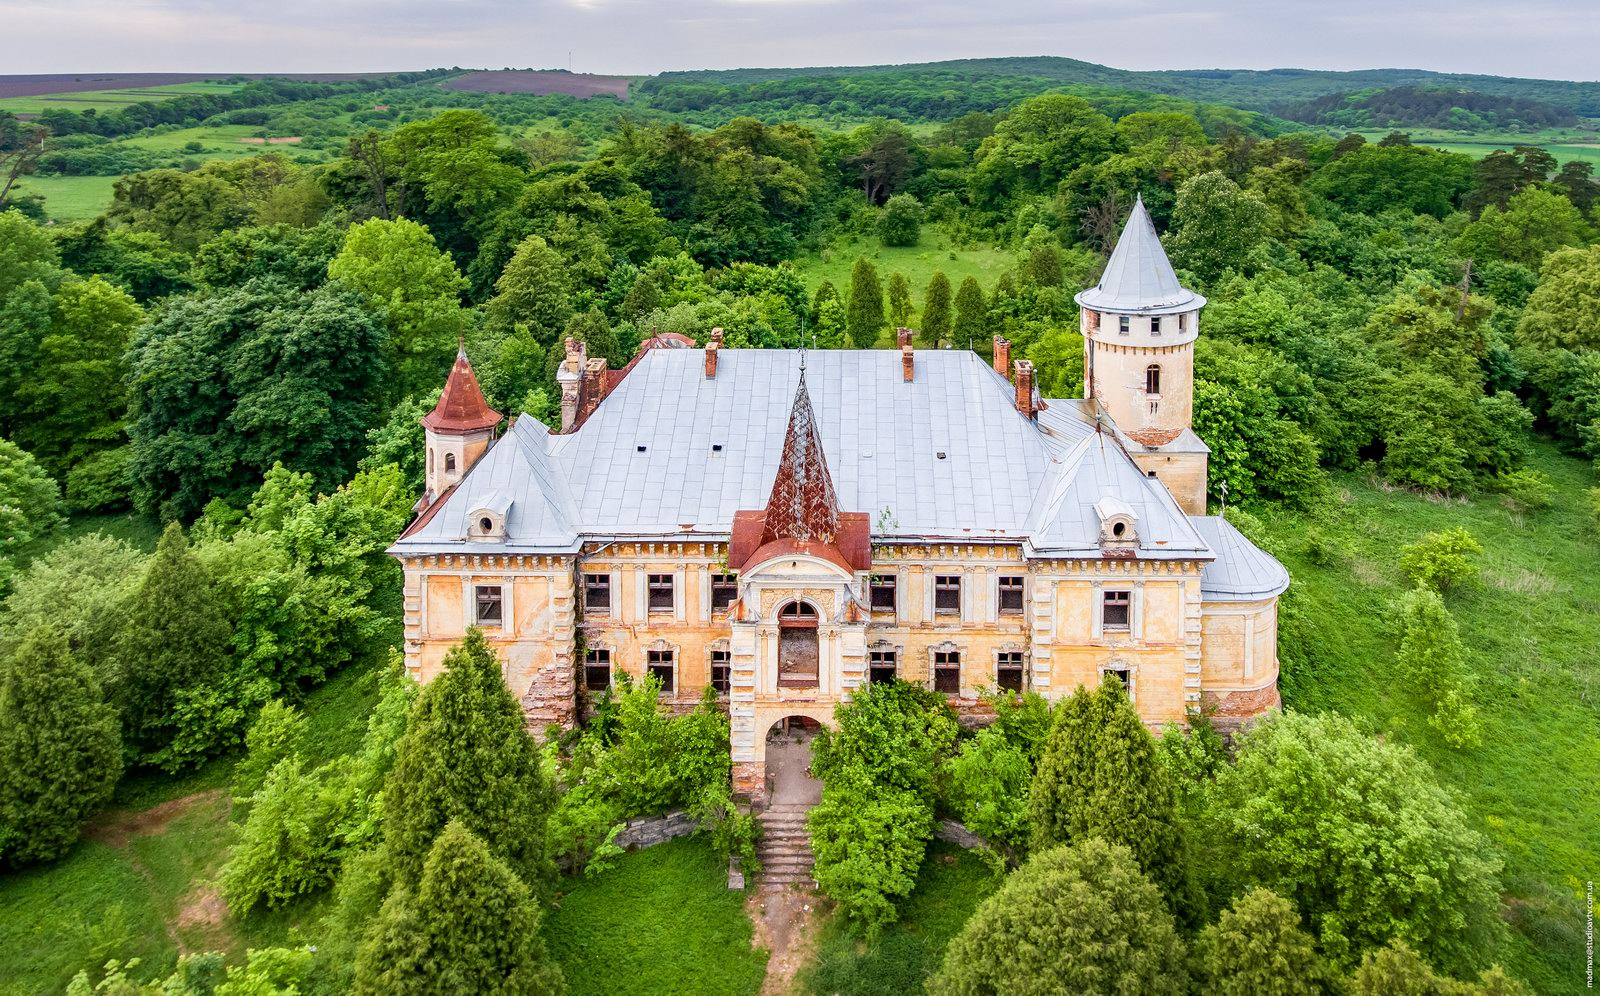 Travel companies of Ivano-Frankivsk region: a selection of sites